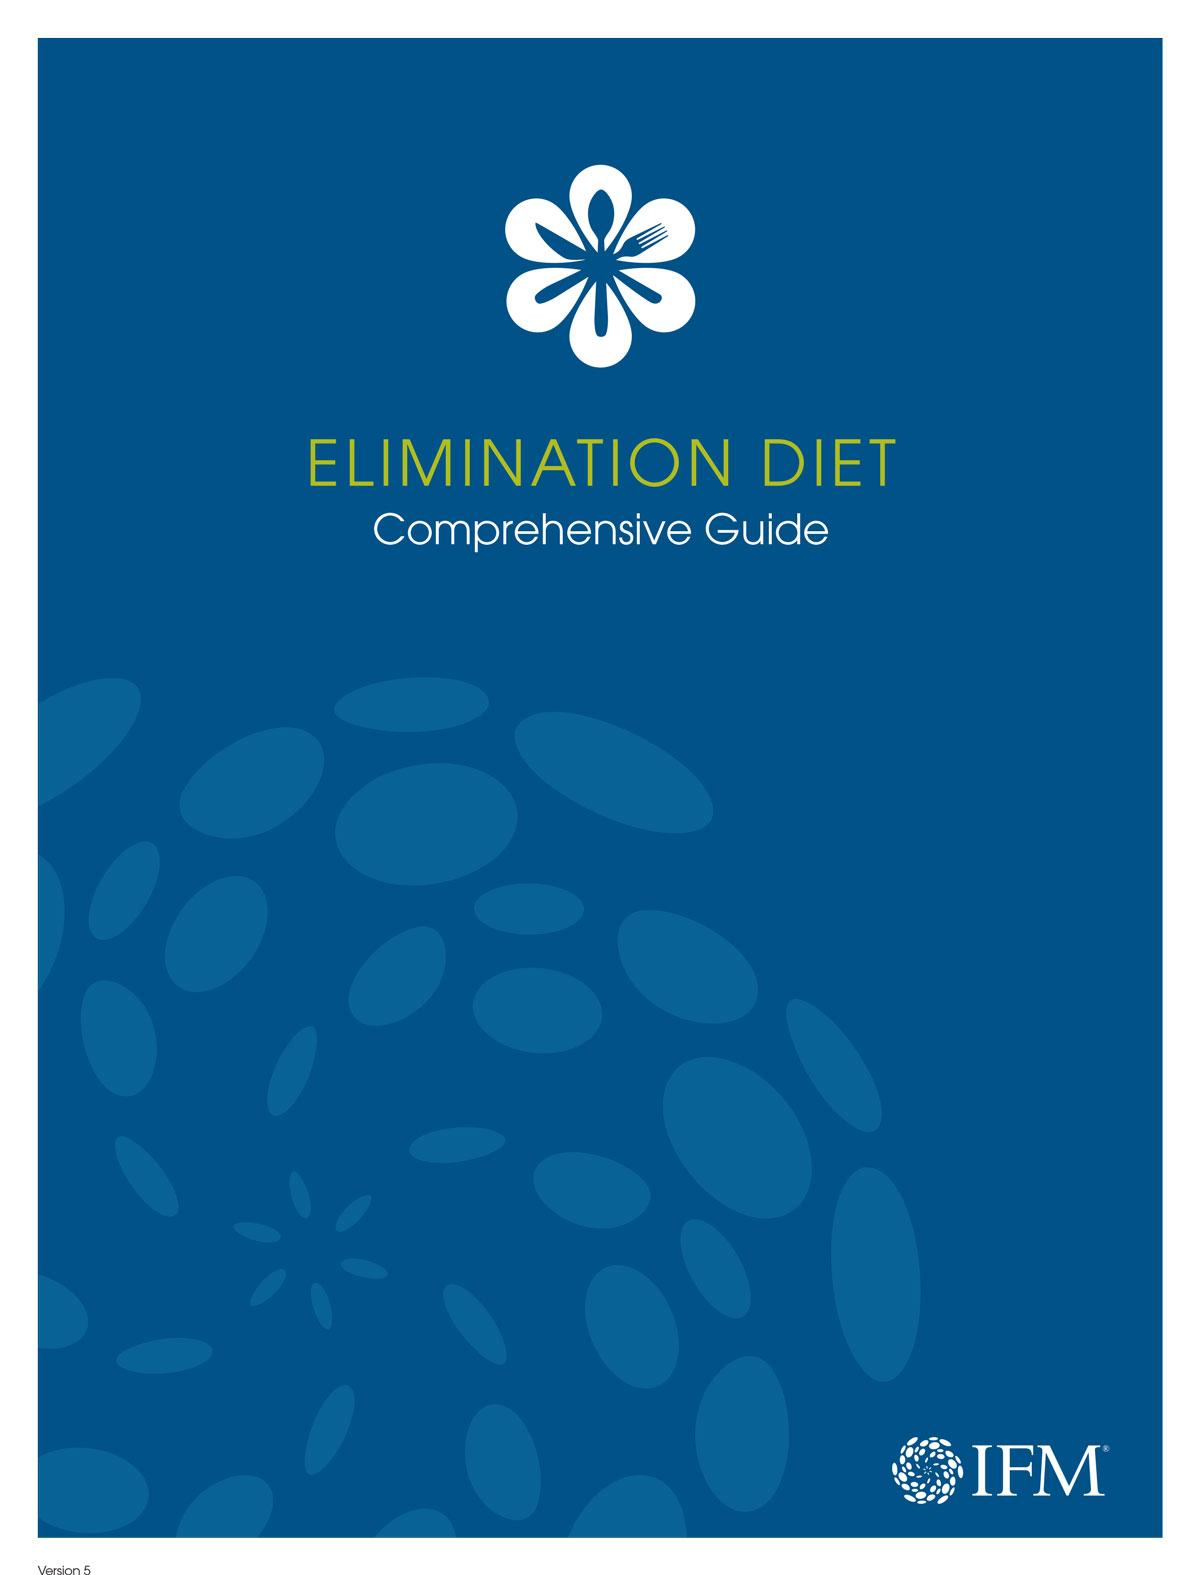 Elimination Diet Comprehensive Guide